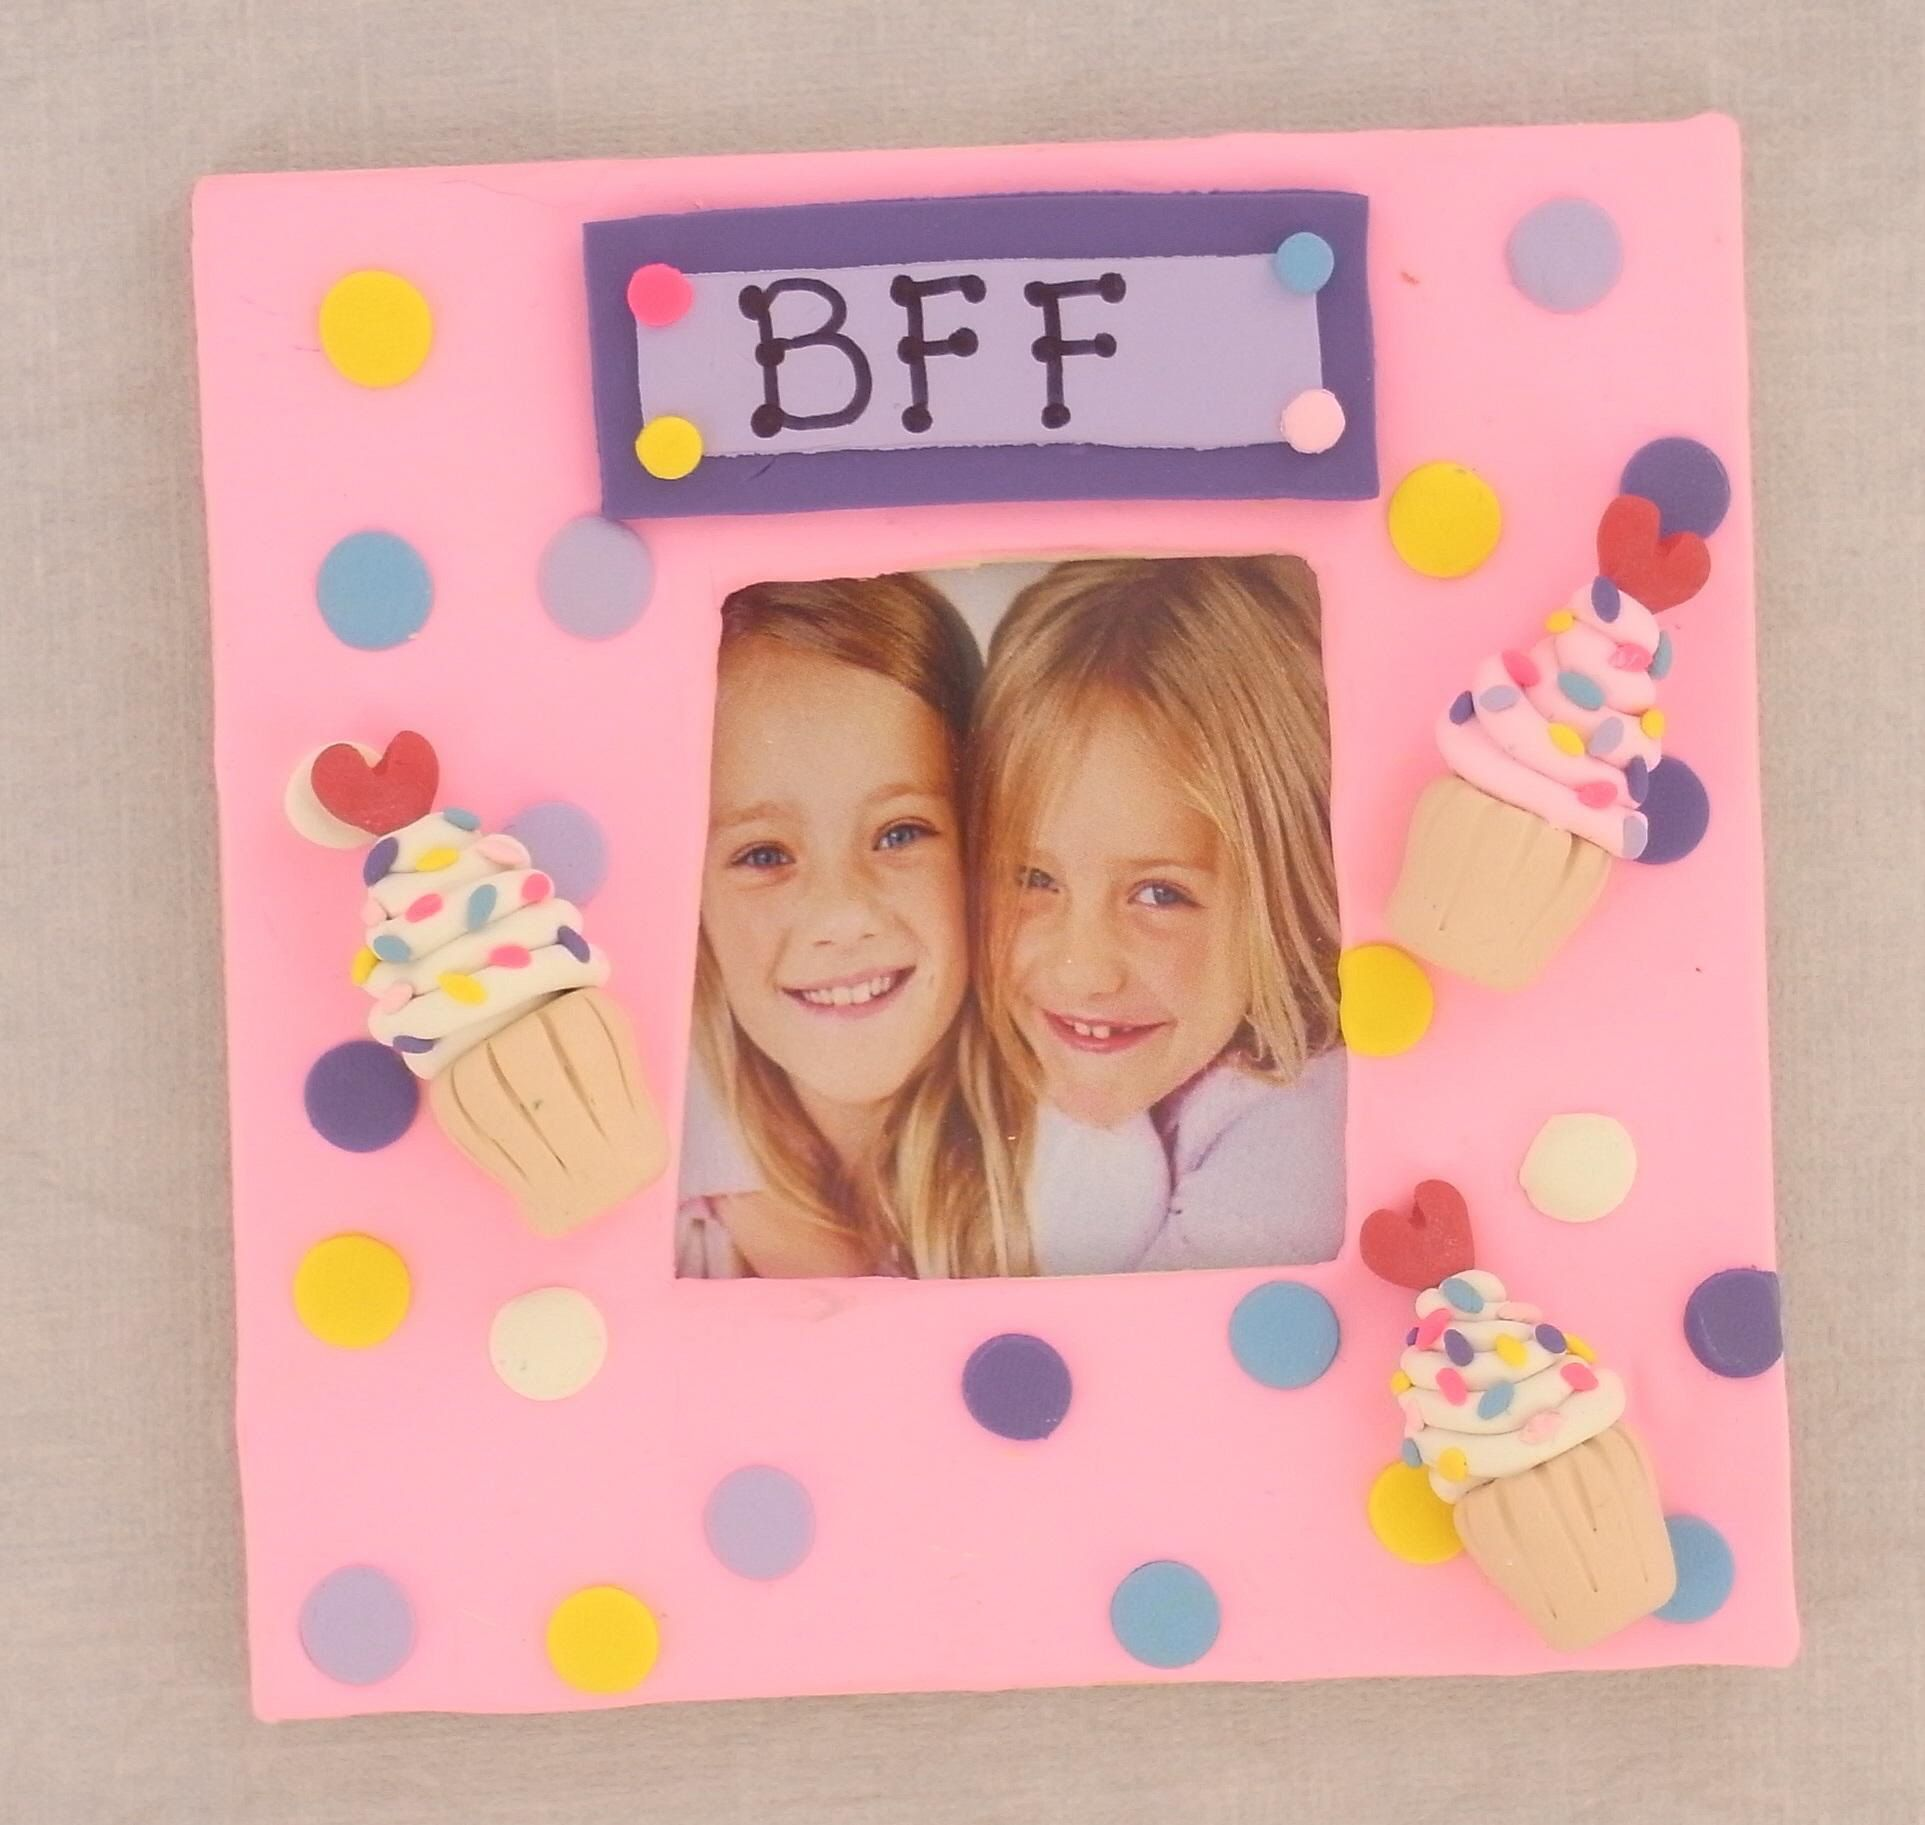 Bake Shop BFF Frame | Pinterest | Bff, Clay and Polymer clay